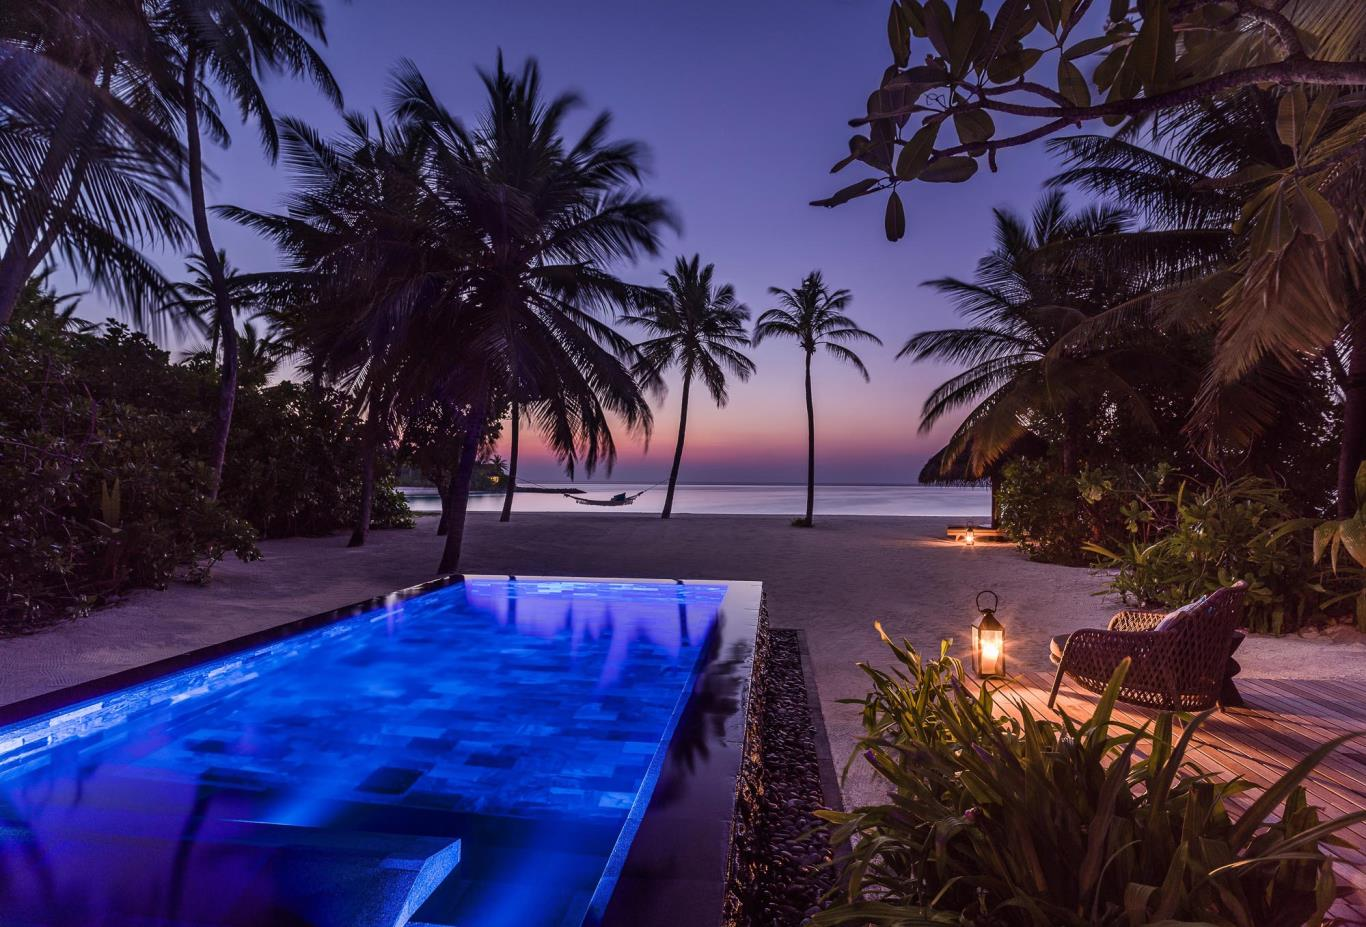 Beach Villa with Pool outdoor deck evening